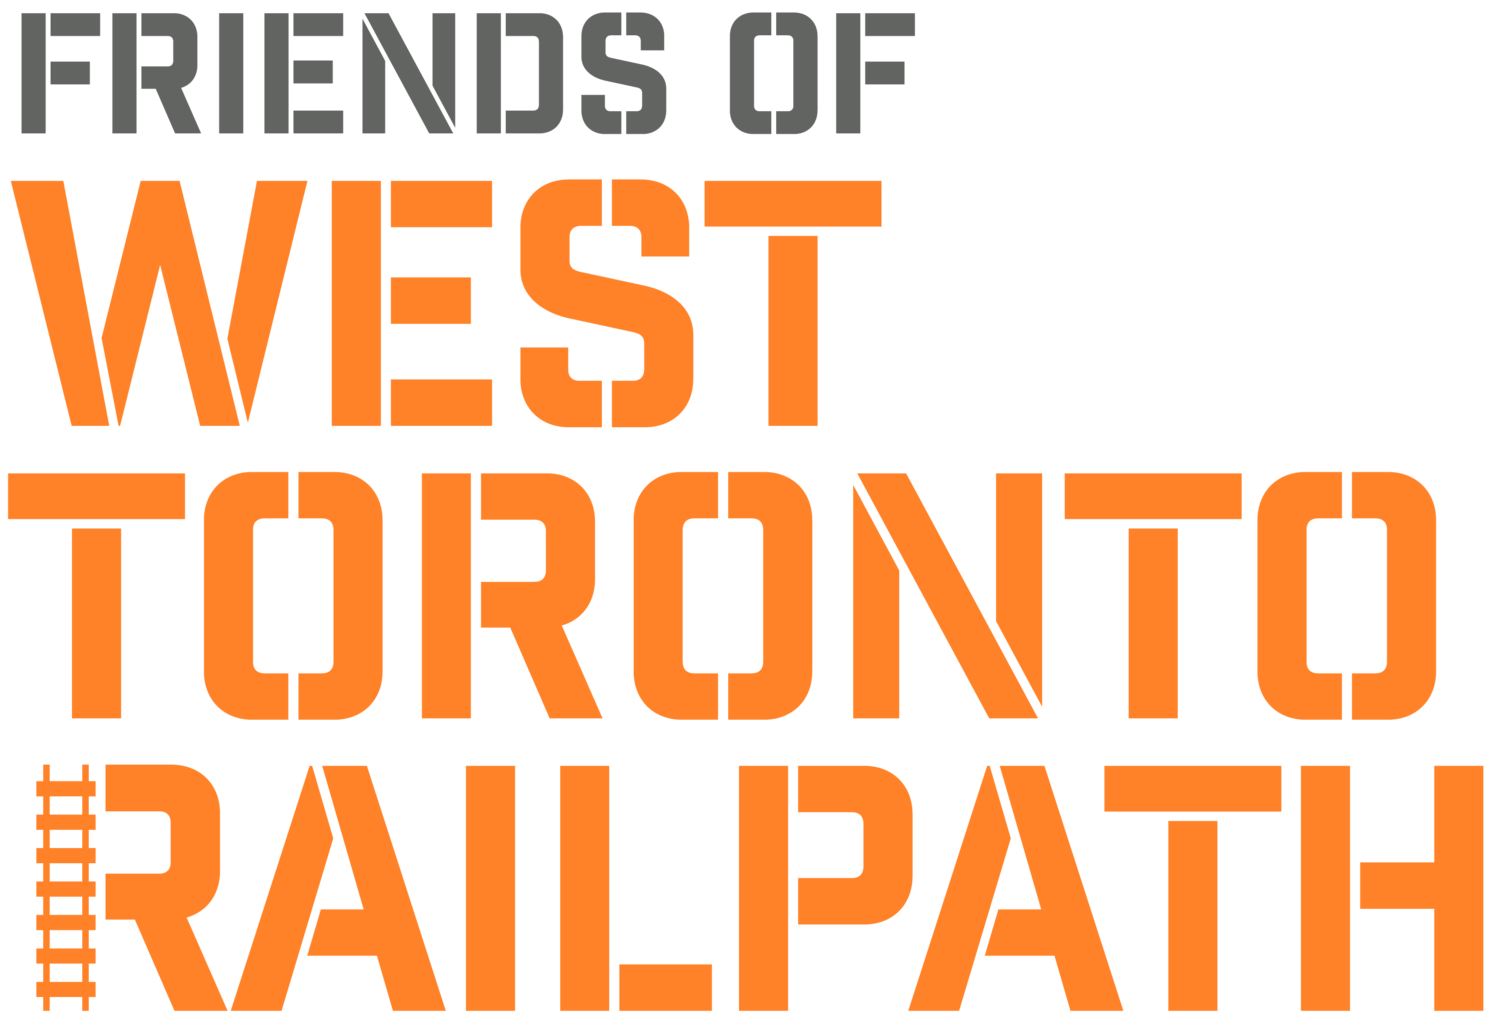 Friends of the West Toronto Railpath